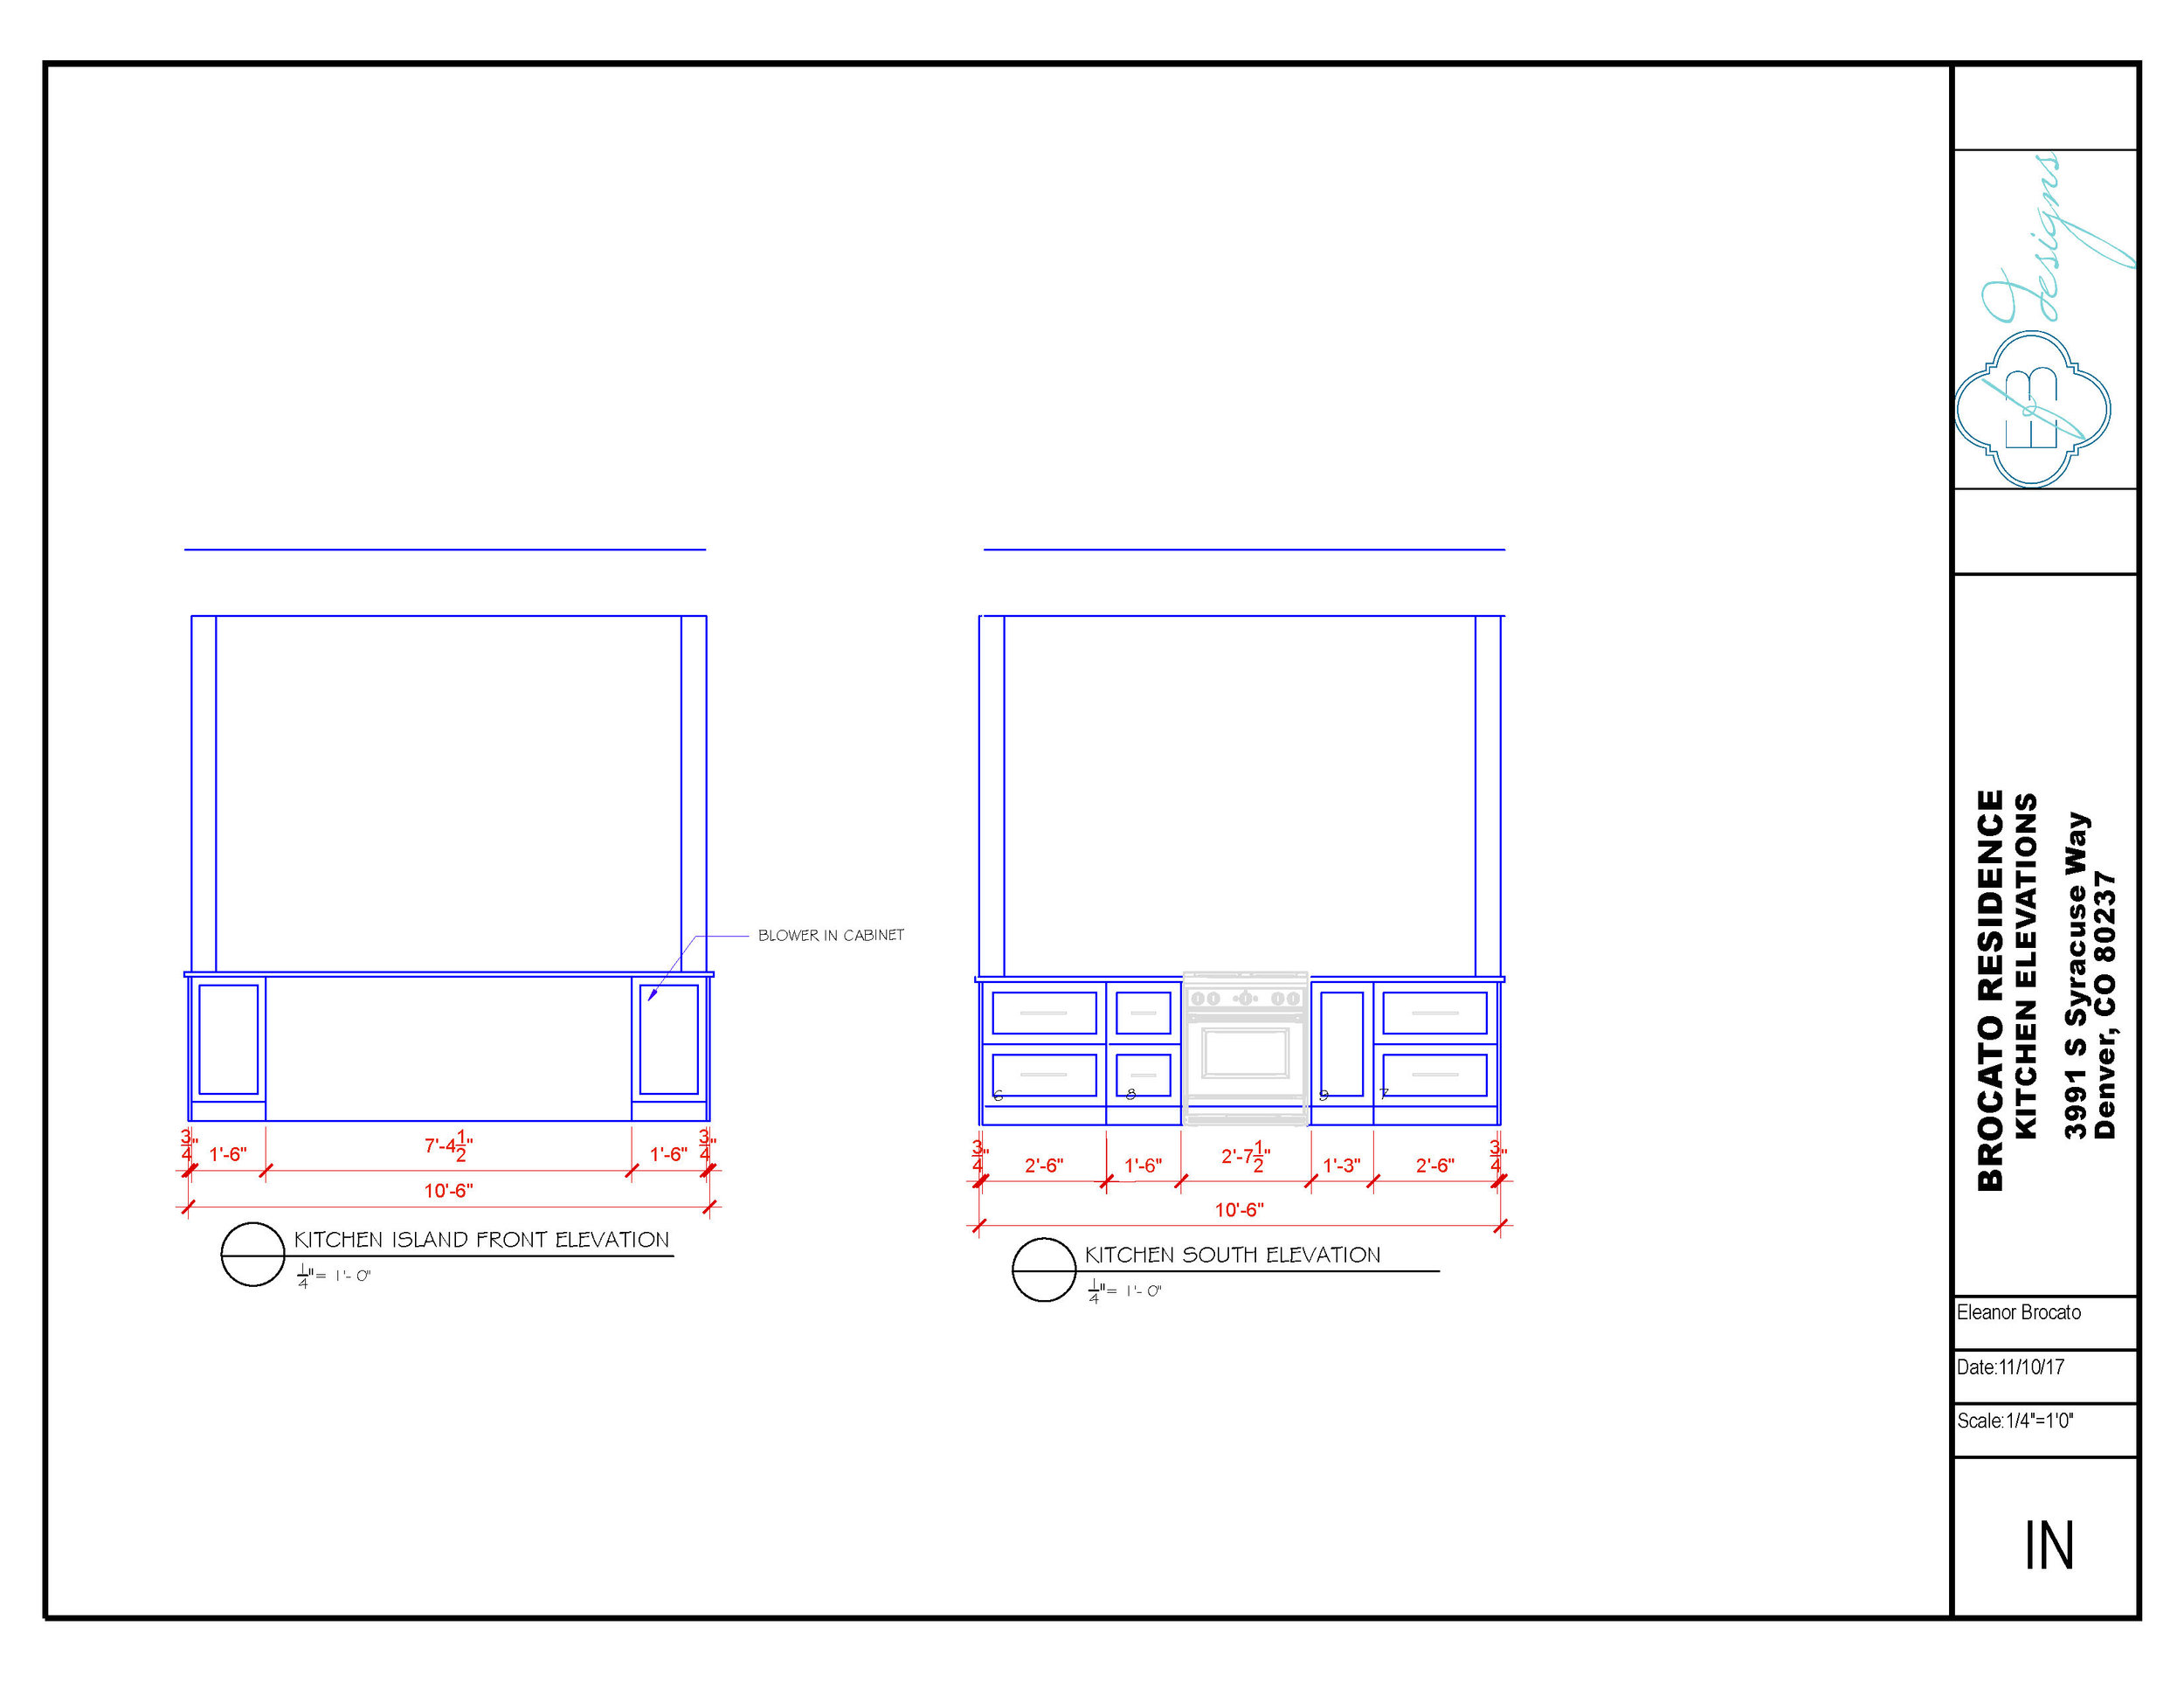 Brocato Kitchen Island Elevations_11-10-17.jpg